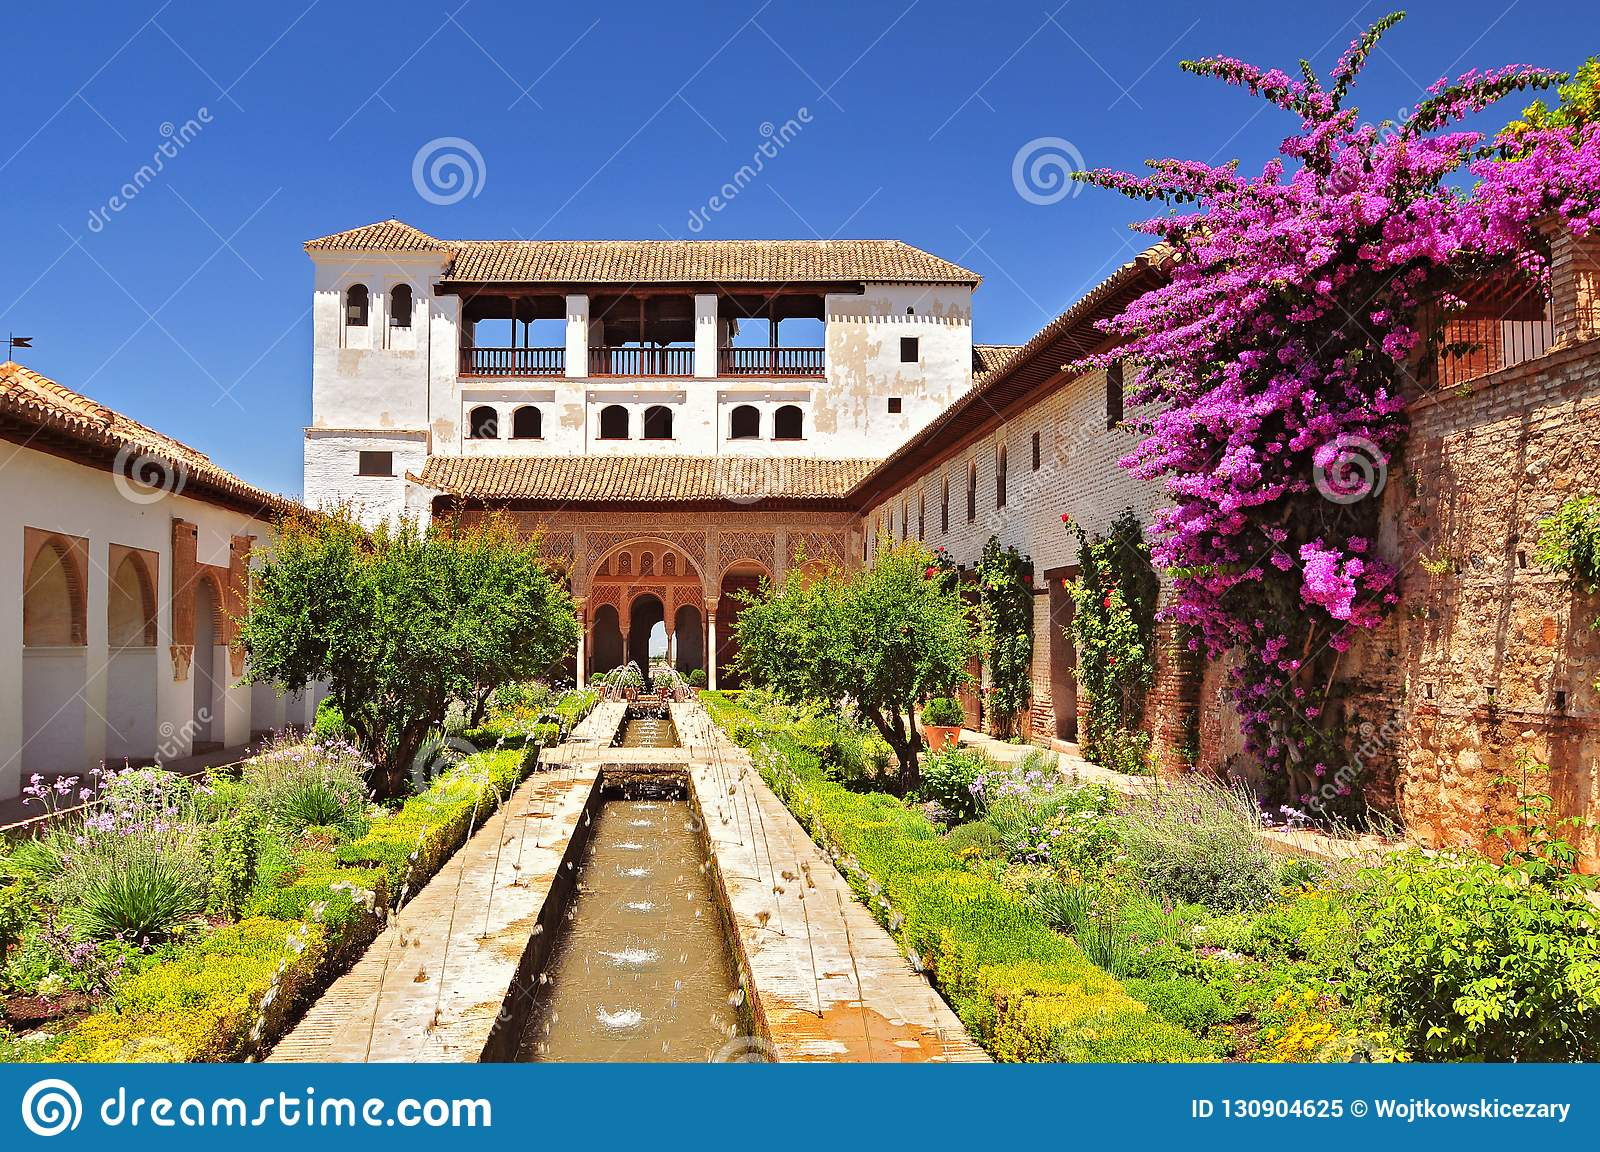 Fountain and gardens in Alhambra palace, Granada, Andalusia, Spain.